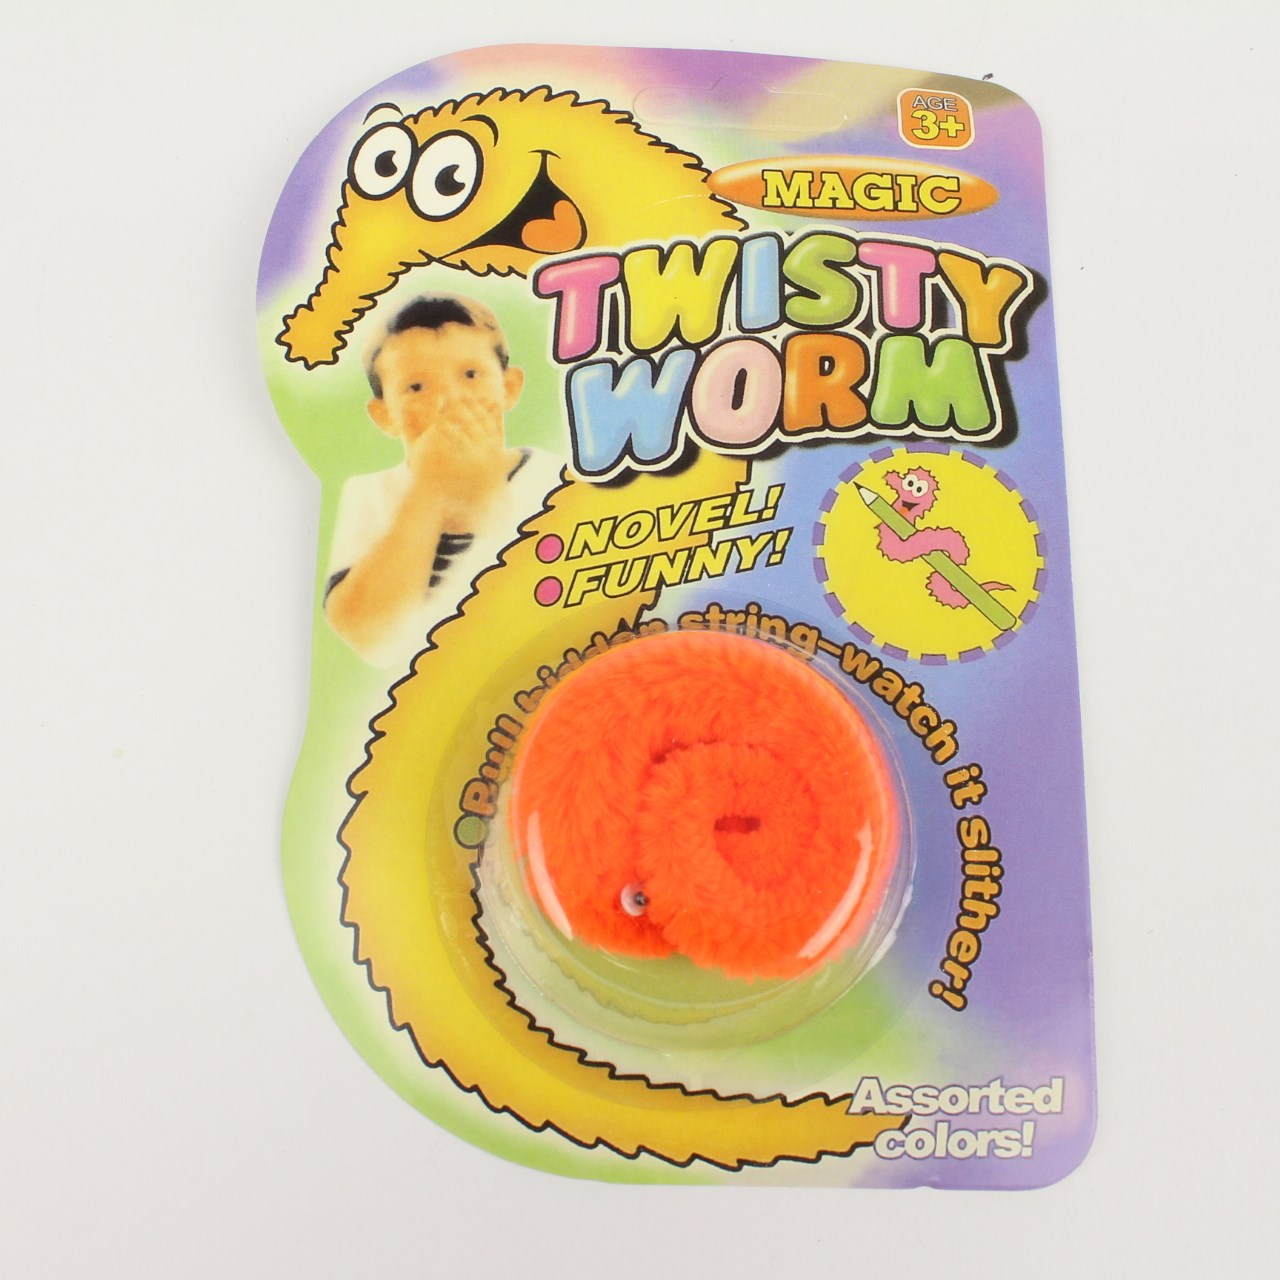 Orange twisty worm